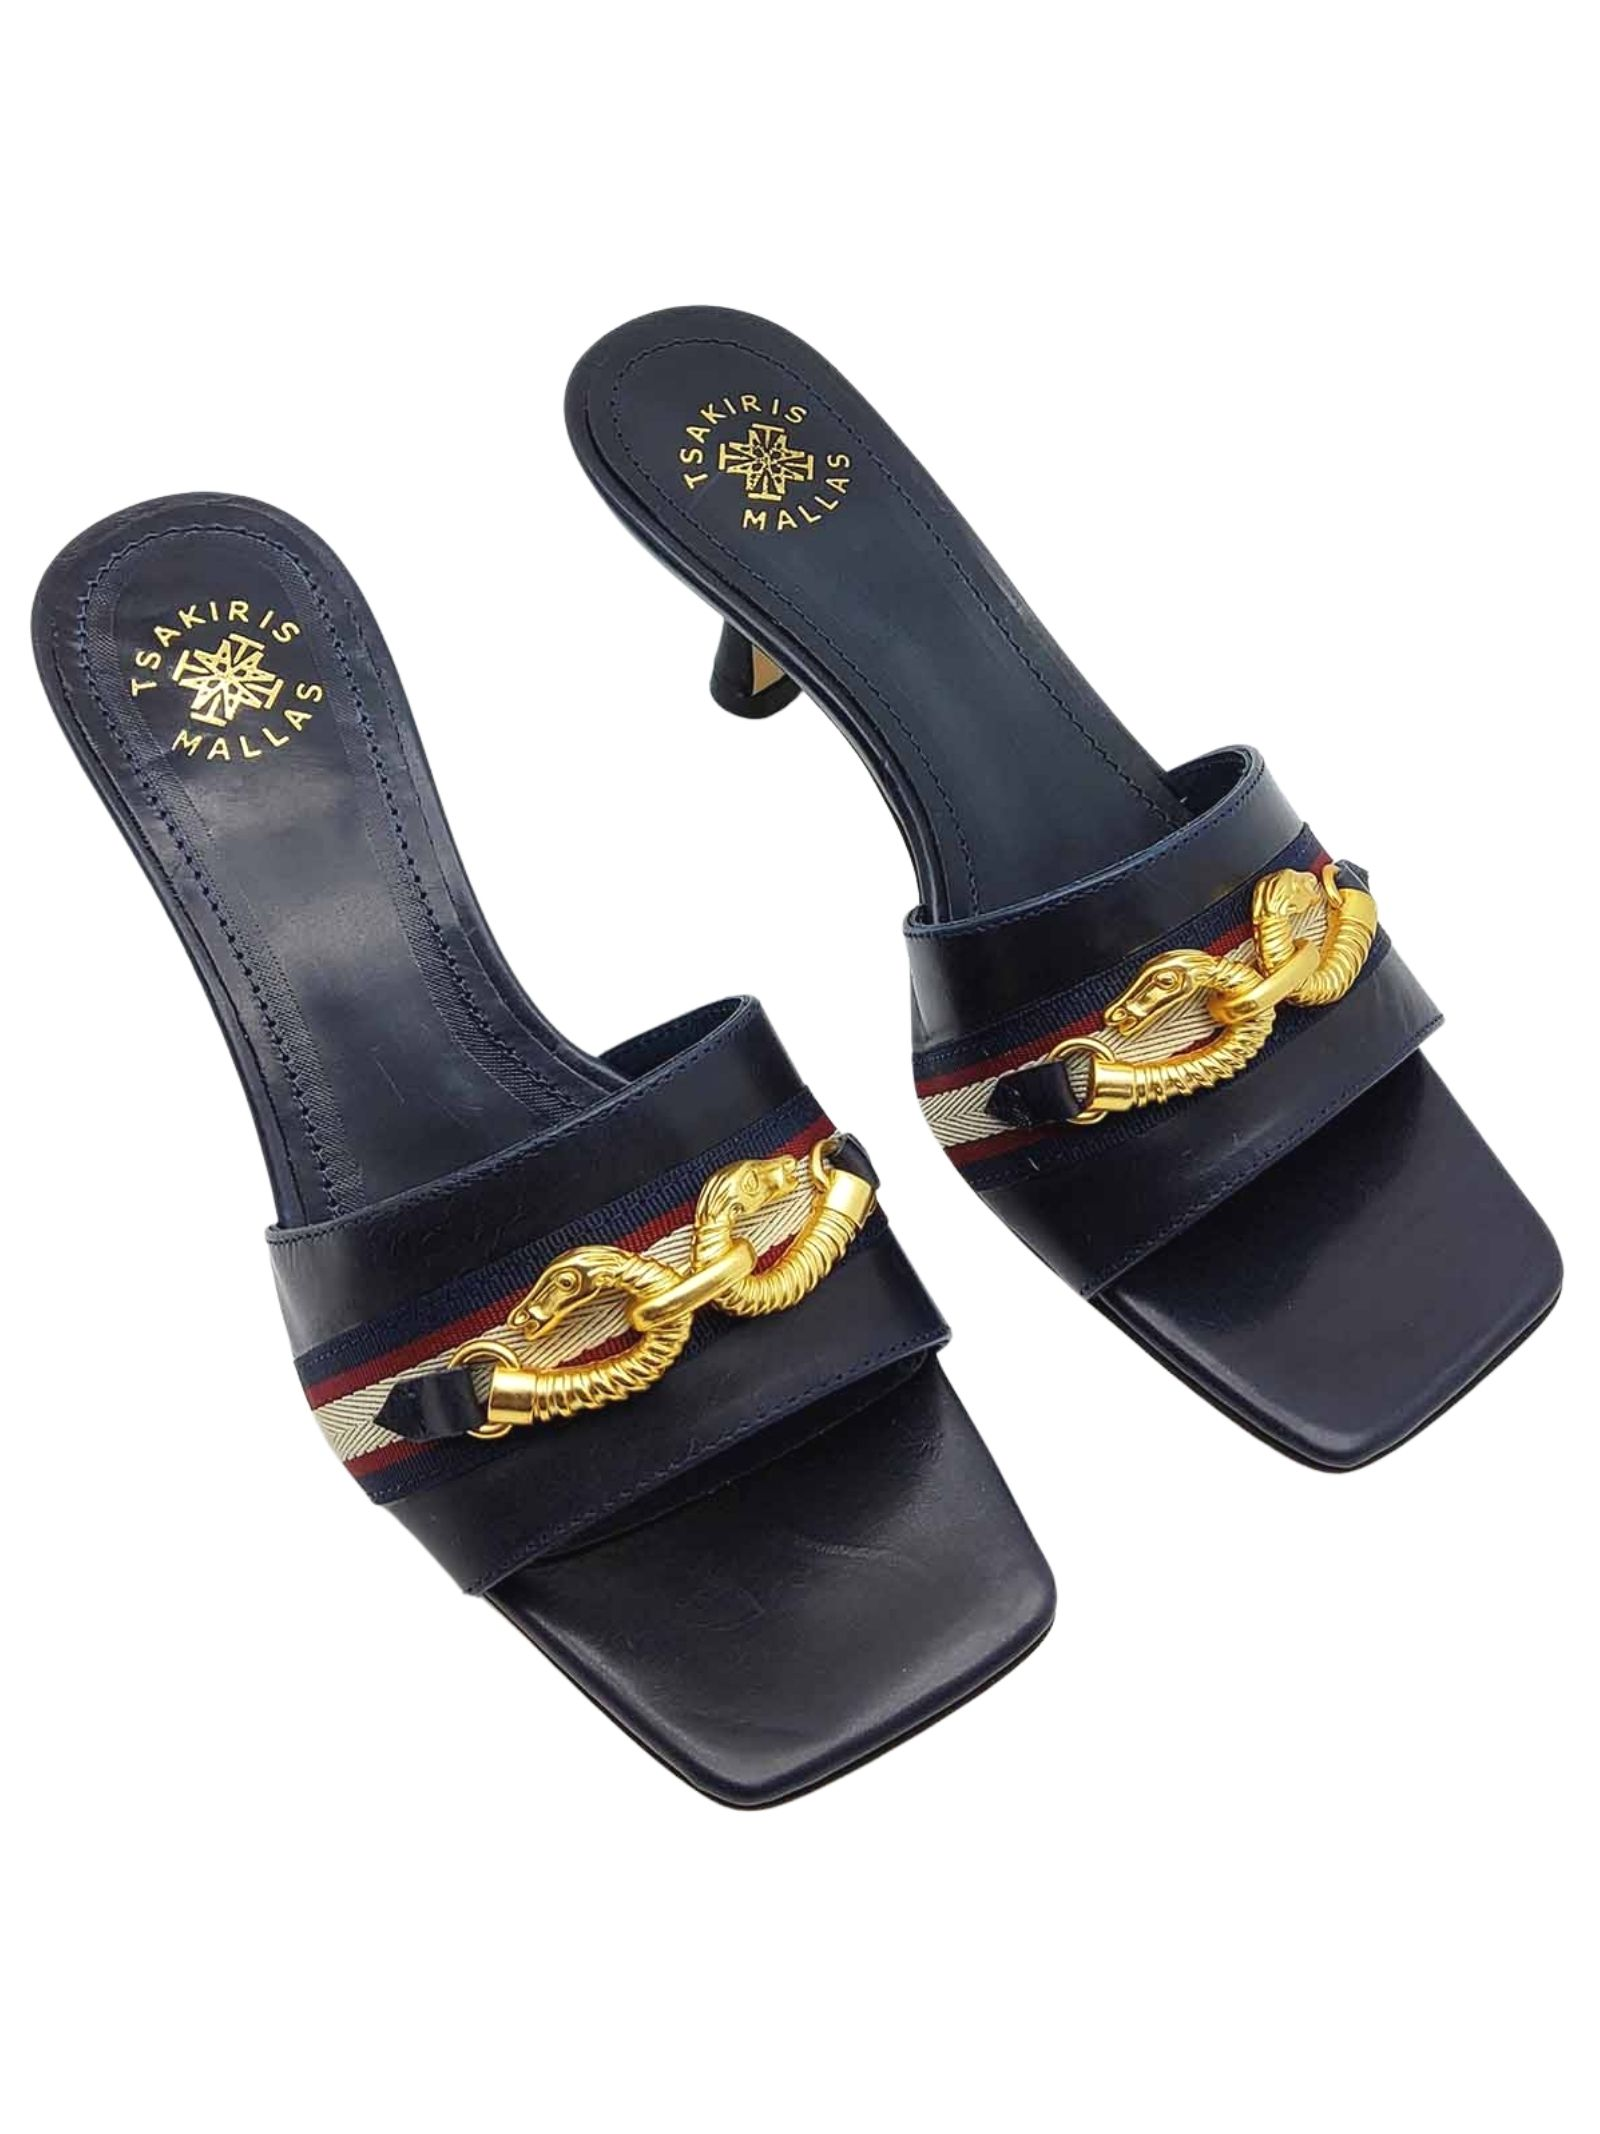 Women's Shoes Sandals Barefoot in Blue Leather Square Toe with Gold Accessory Exe   Sandals   705002